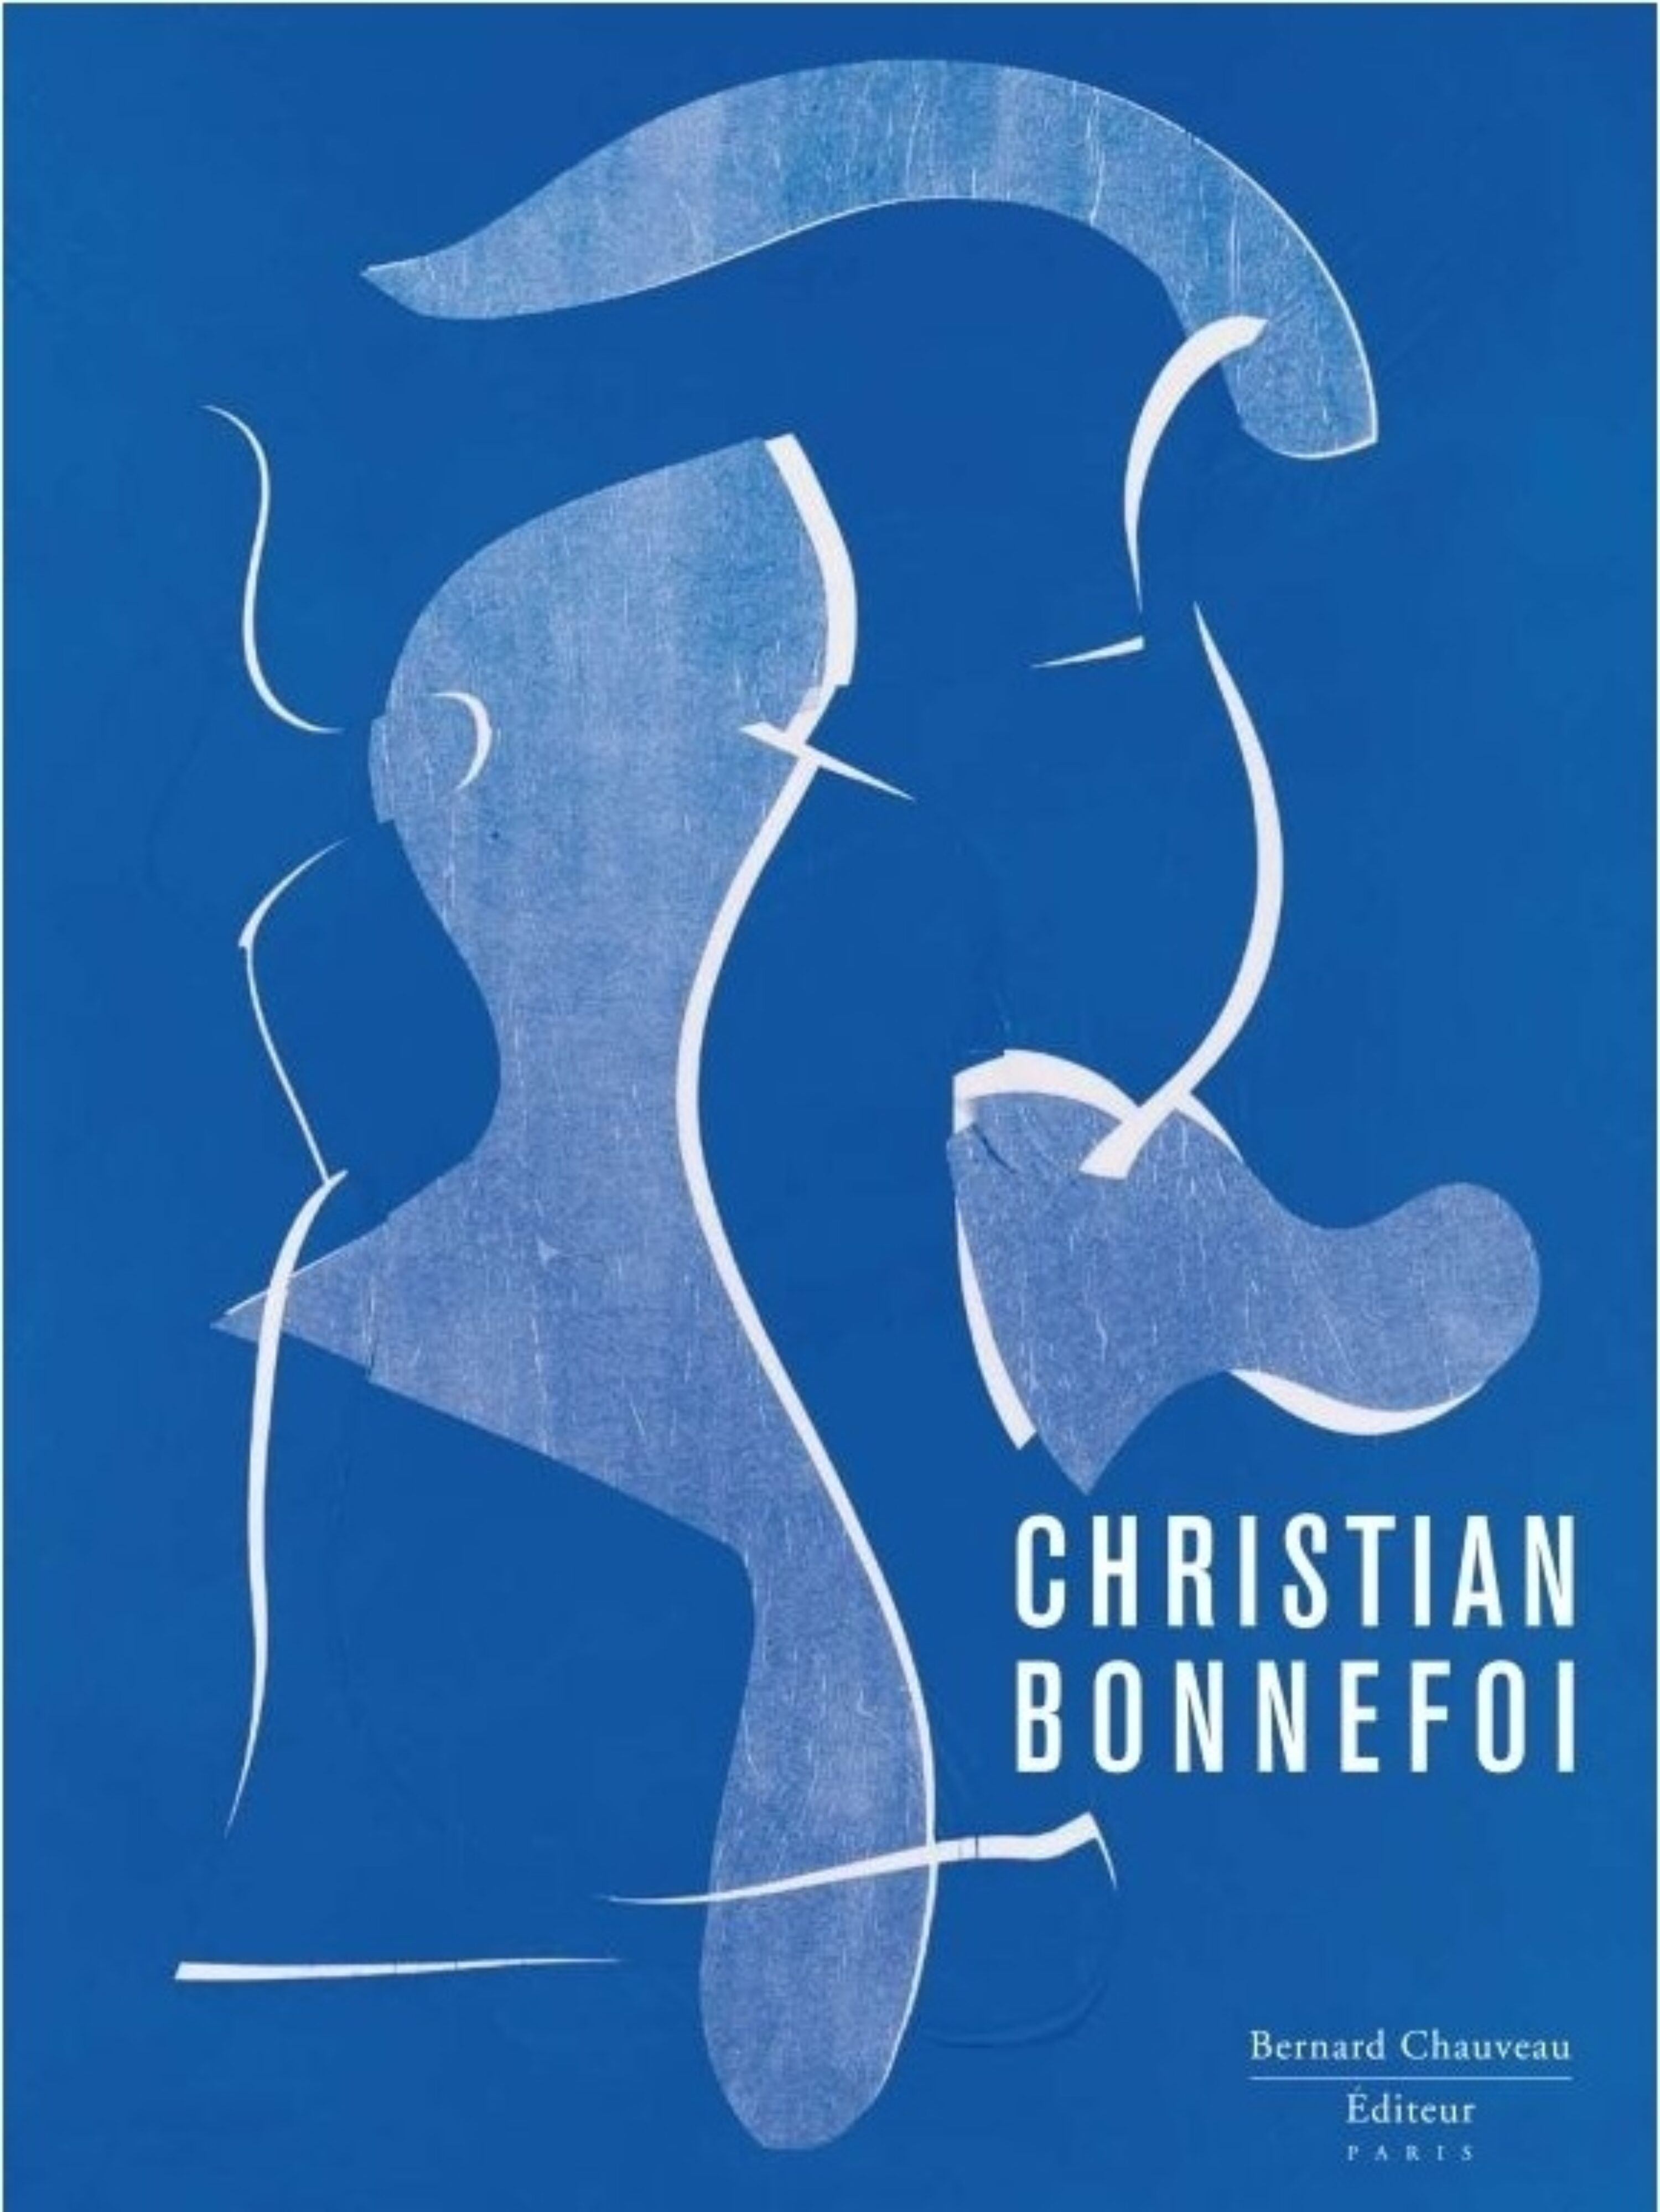 Image of the front cover of Christian Bonnefoi